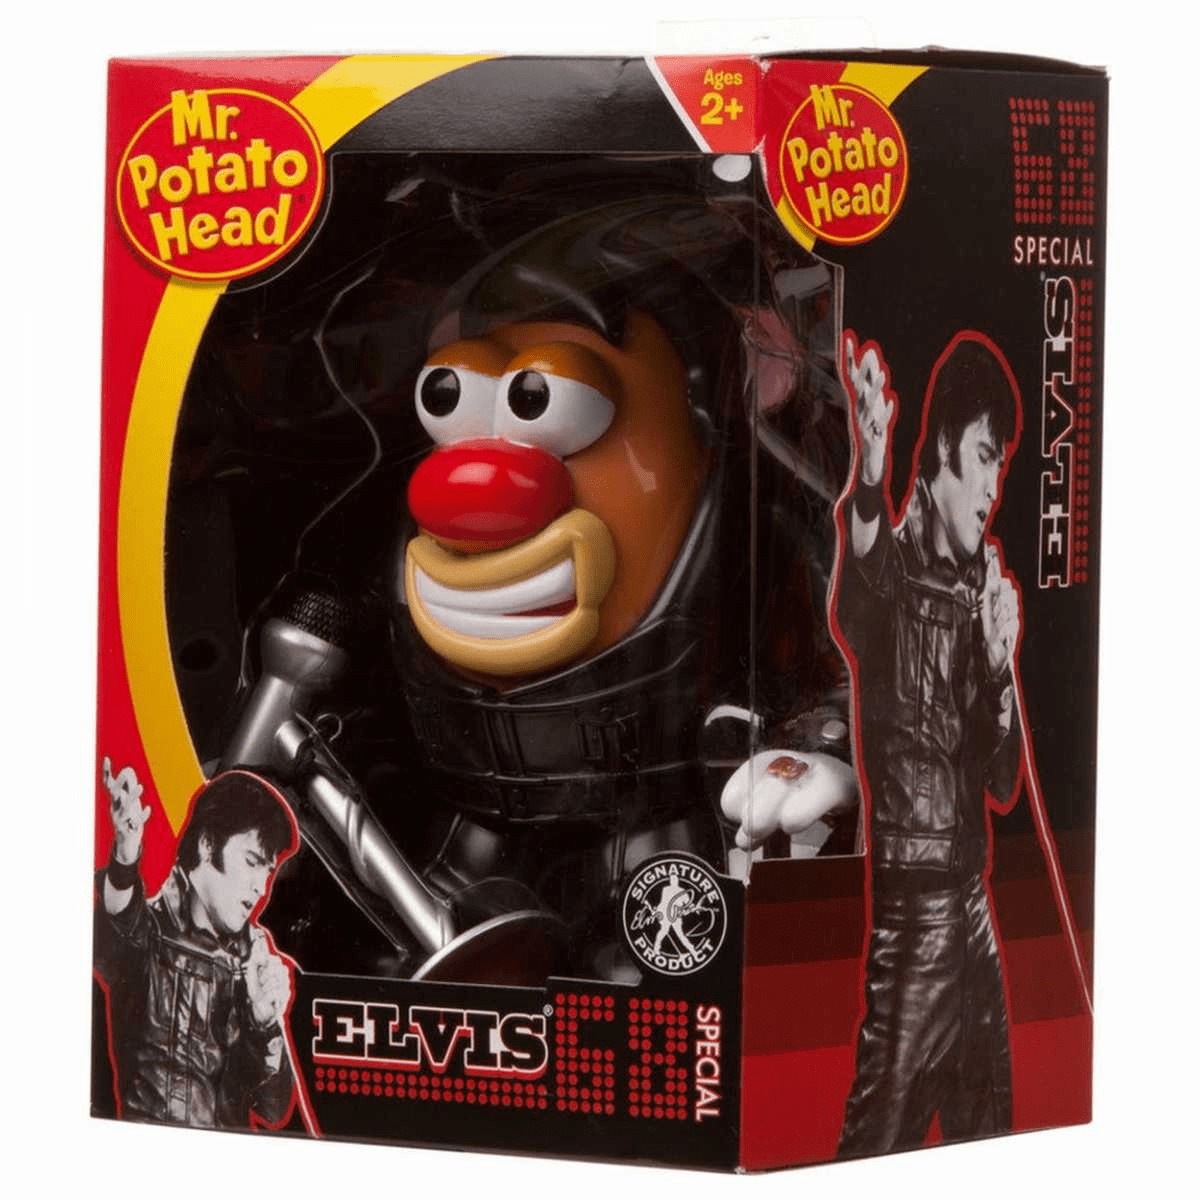 Mr. Potato Head Elvis Presley 68 Special Figure